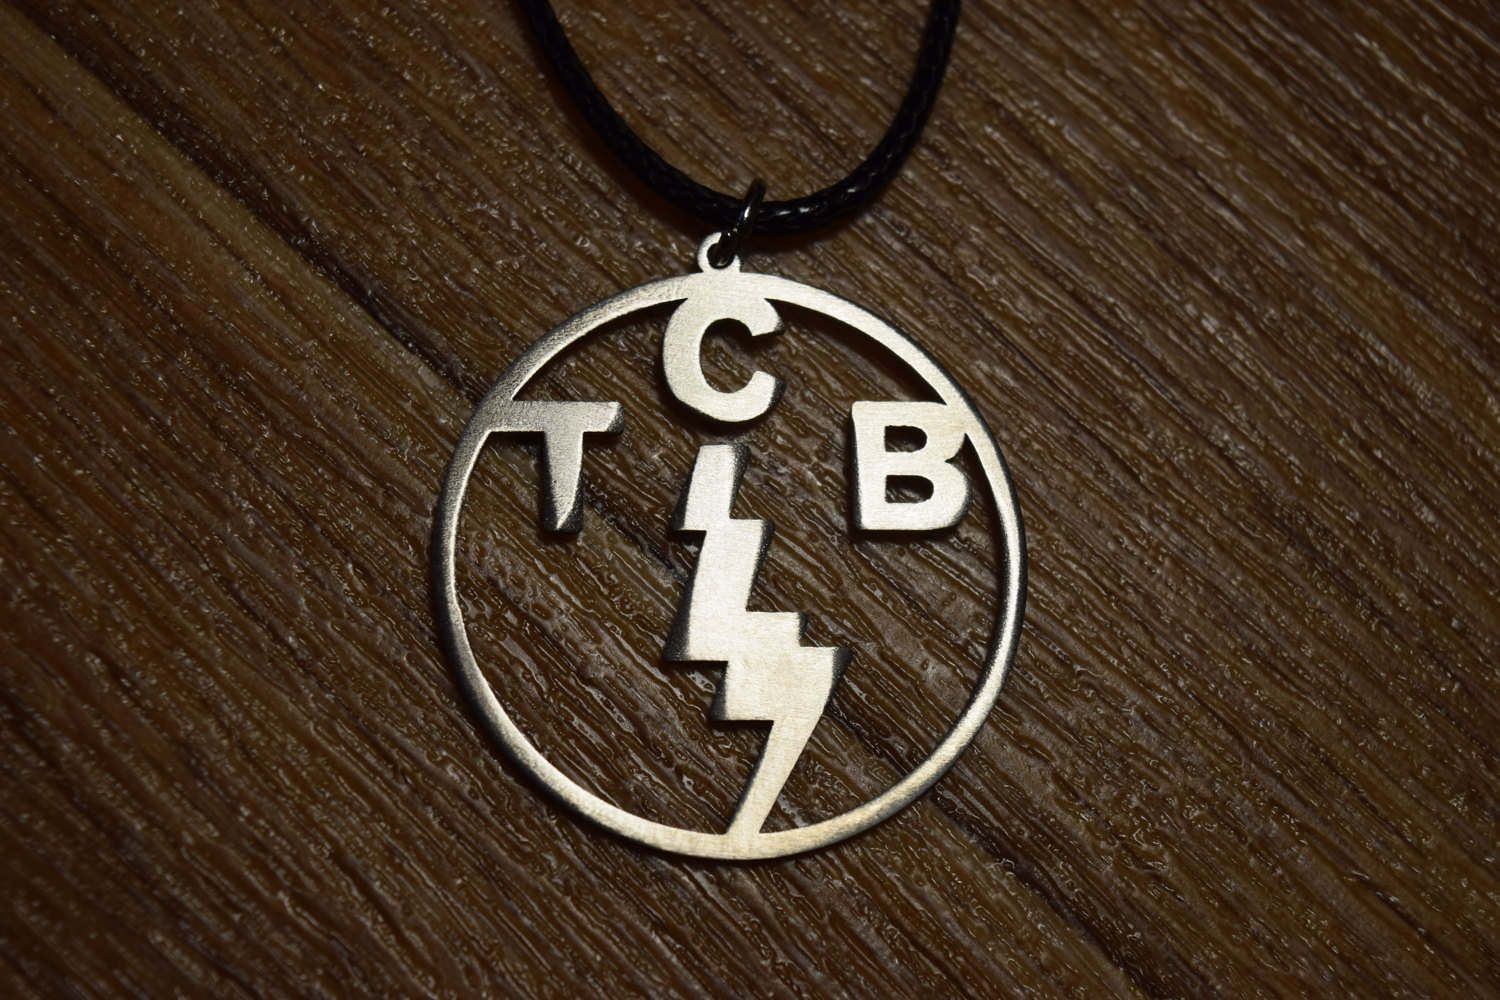 Taking care of business elvis presley tcb necklace pendant symbol taking care of business elvis presley tcb necklace pendant symbol guo guo s talisman choker mozeypictures Gallery